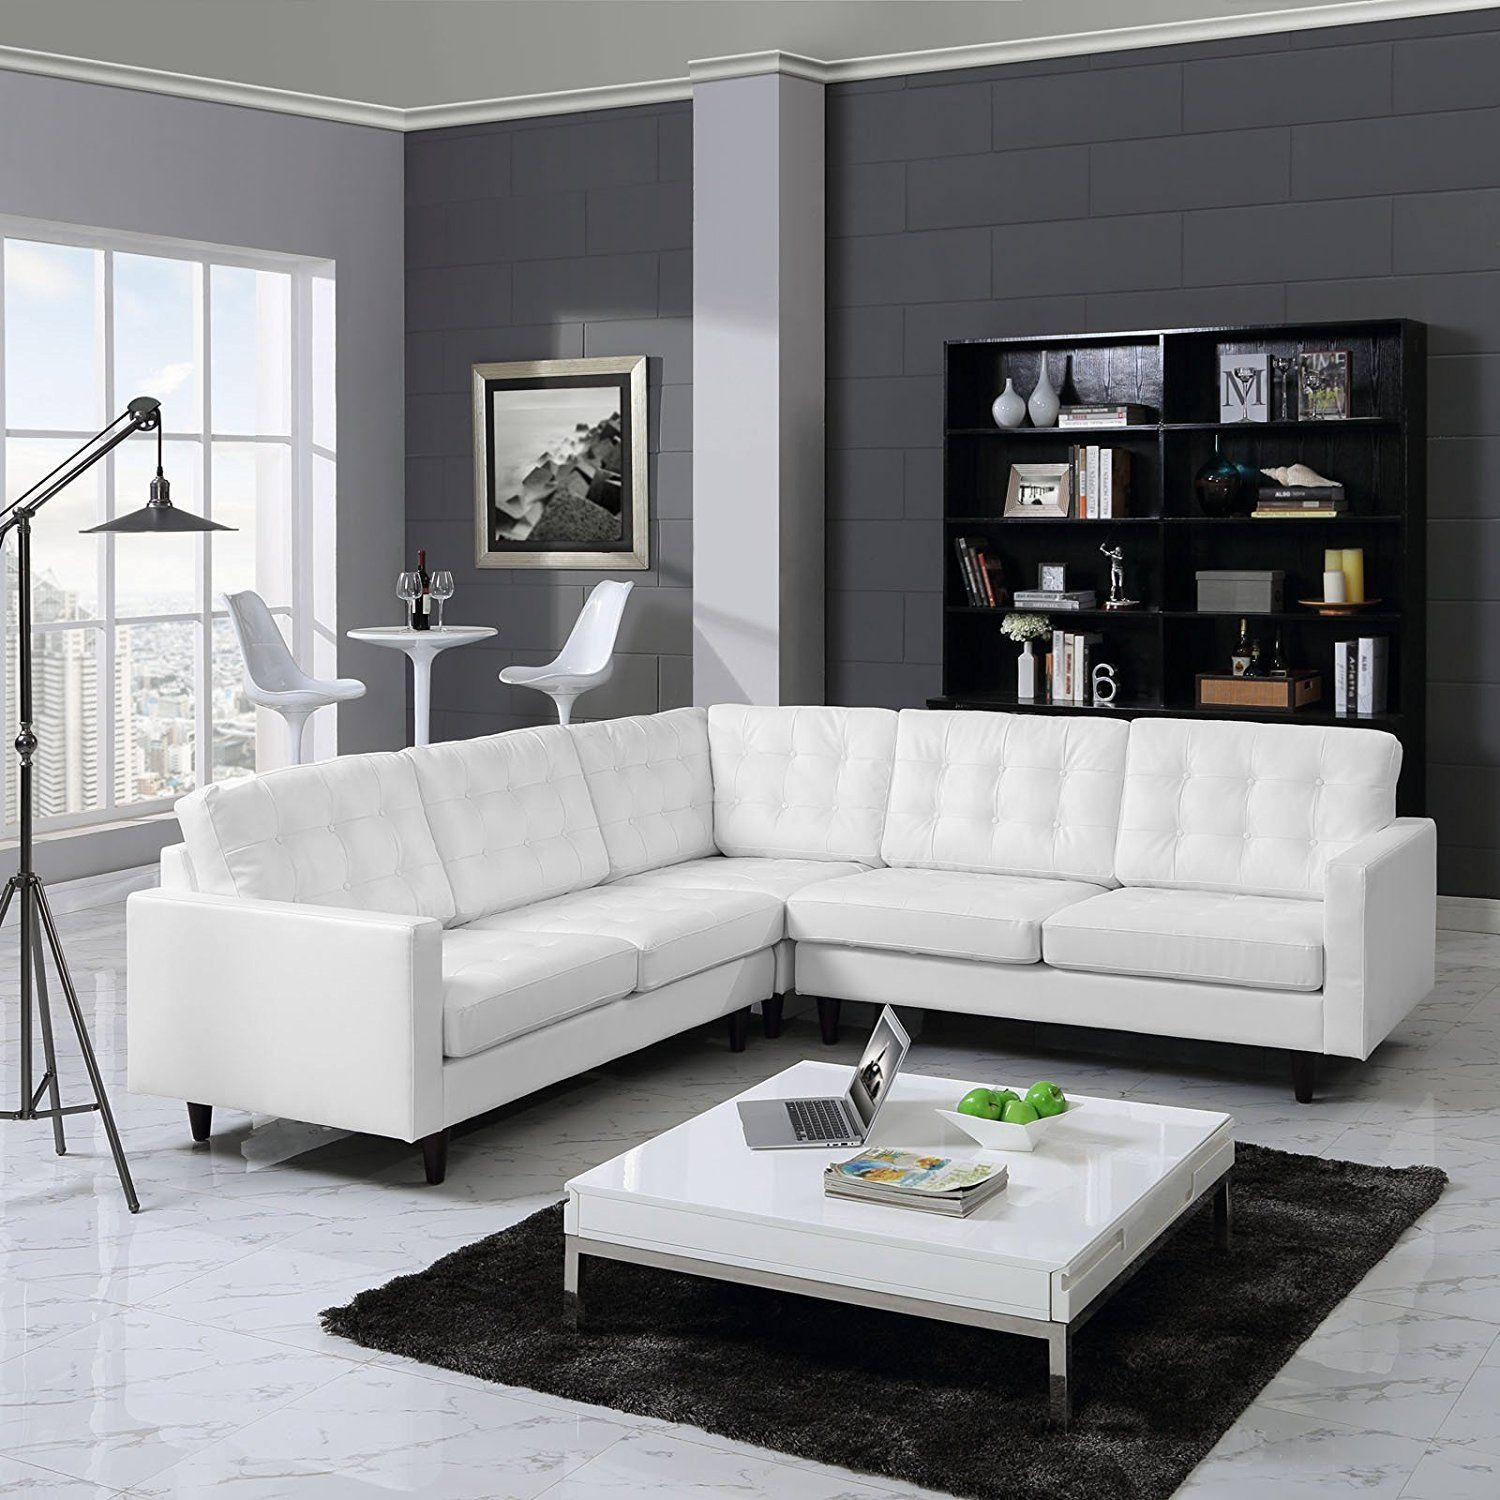 Modway Furniture Empress Eei 1549 White Bonded Leather Sectional Sofa White Sectional Sofa White Sectional Sectional Sofa Couch